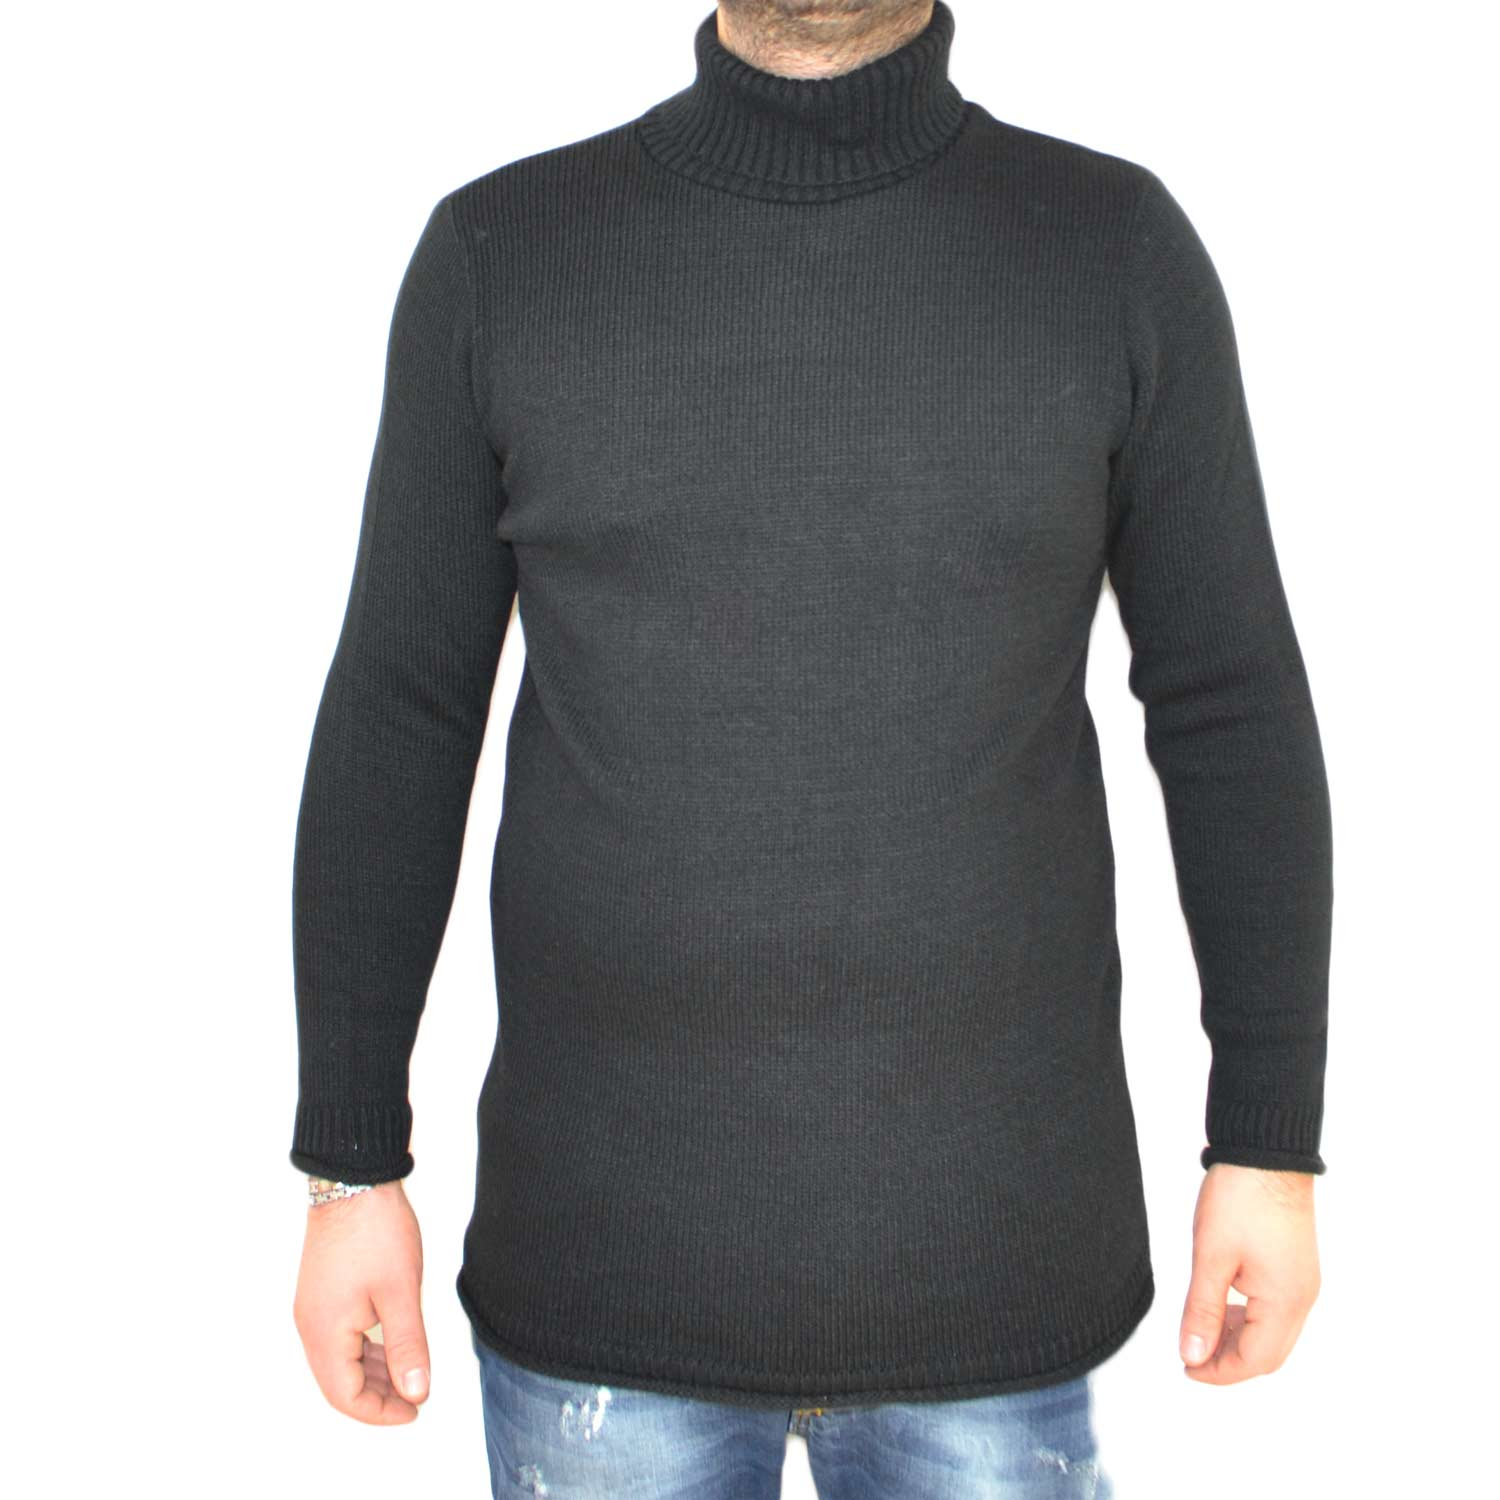 Maglione collo alto art..4432 nero made in italy moda tendenza slim.